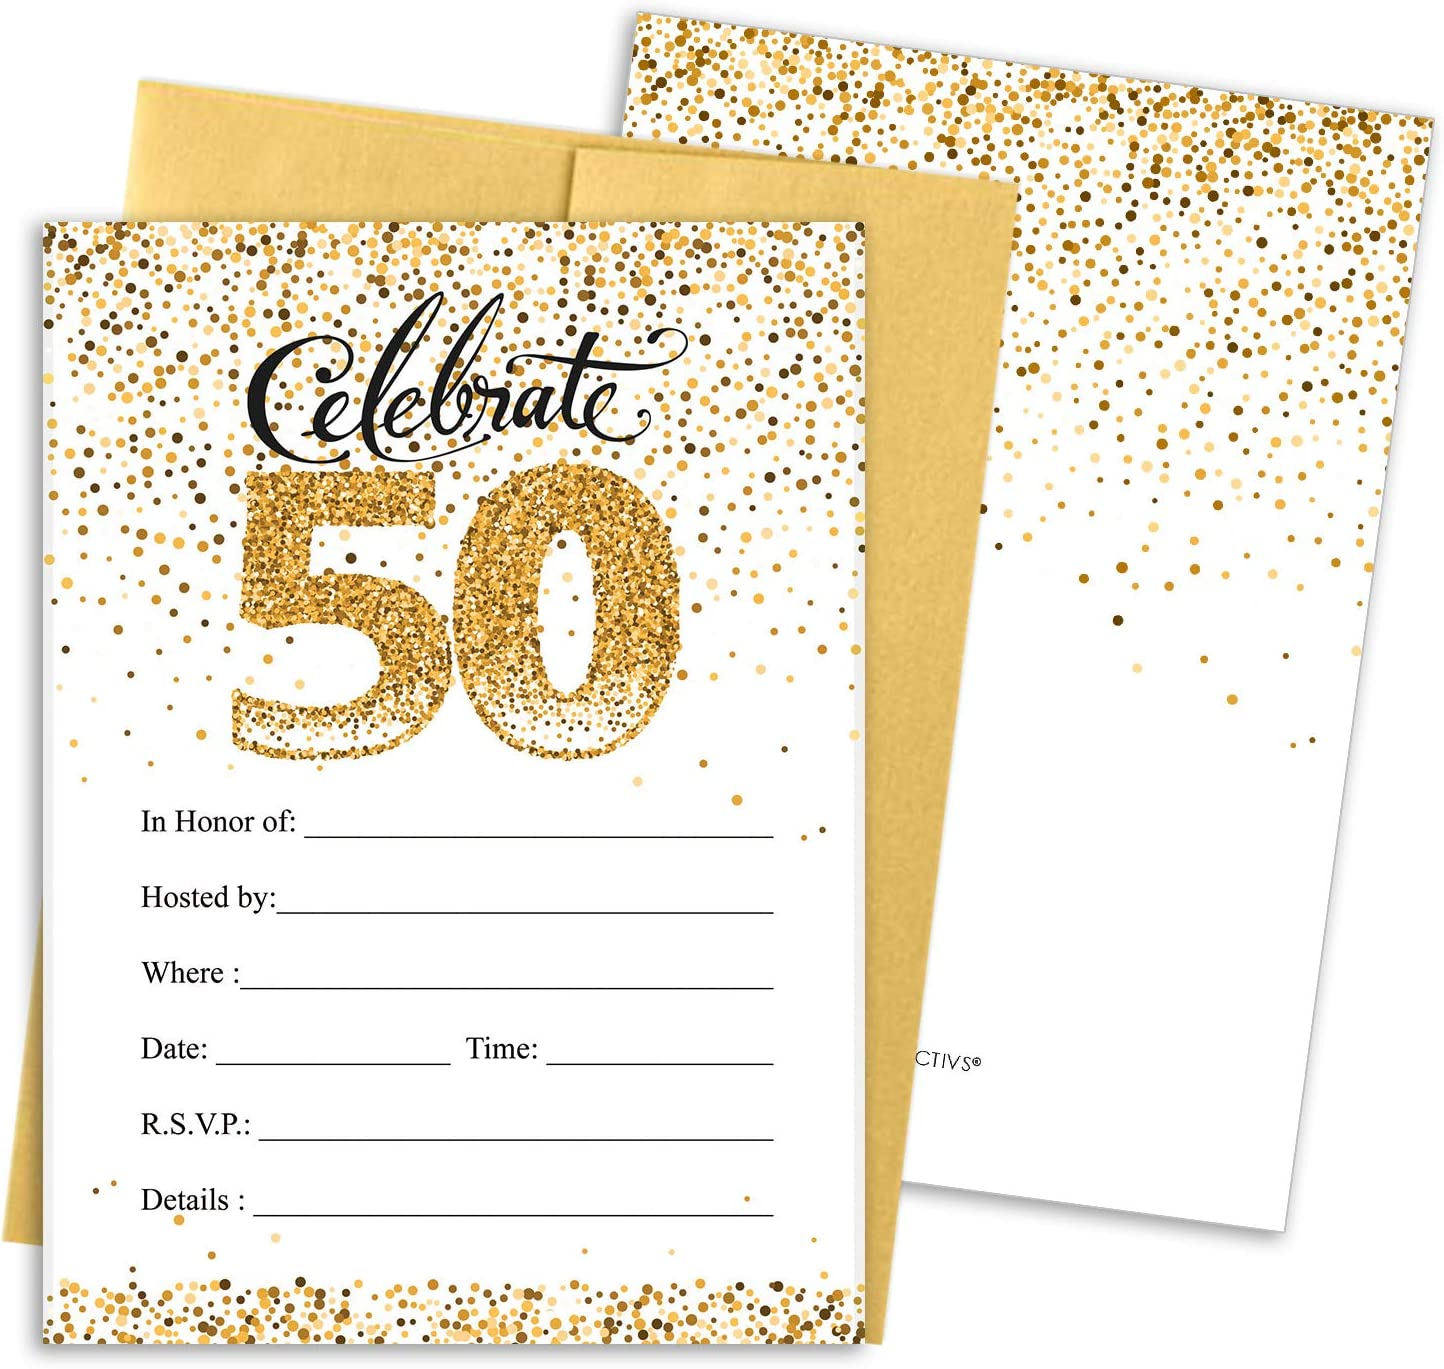 Amazon.com: White and Gold 50th Birthday Party Invitations - 10 Cards with  Envelopes: Health & Personal Care